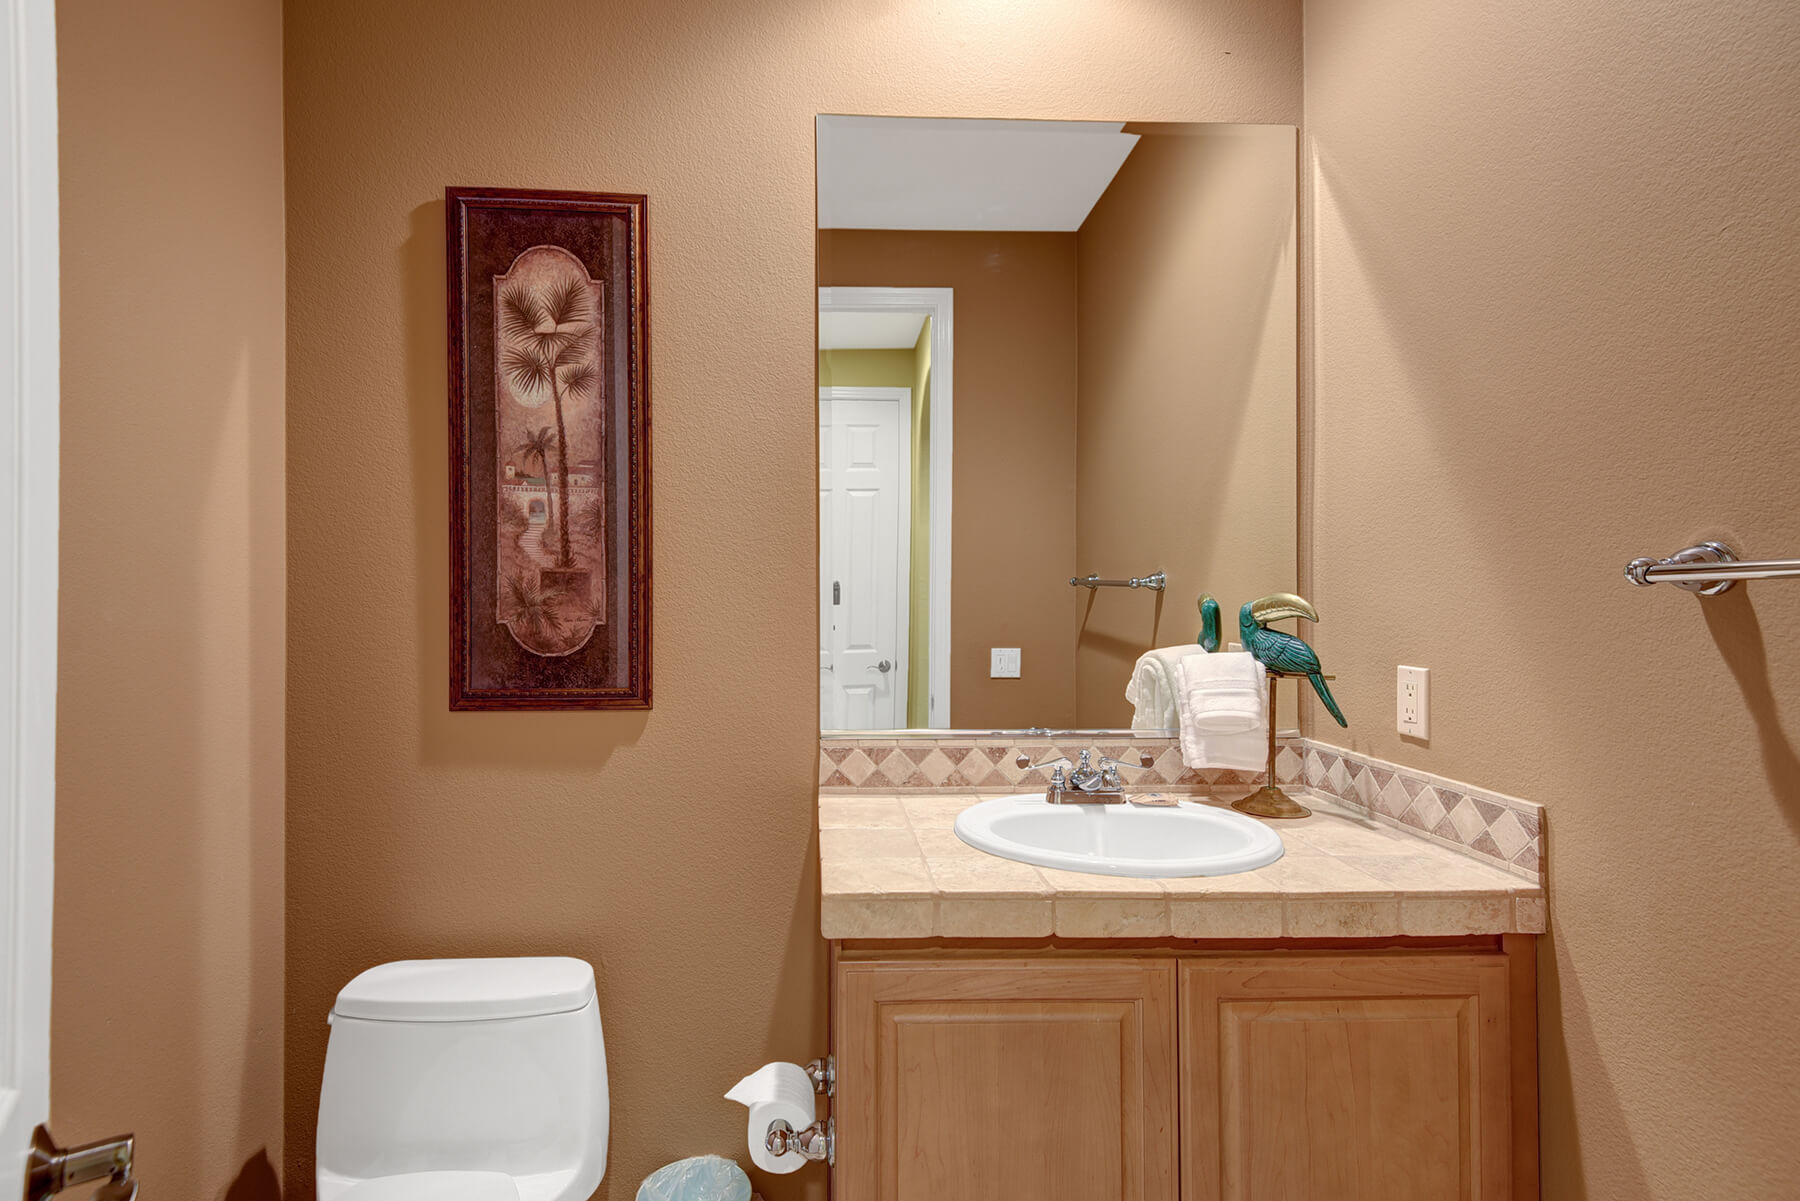 B97BB97D-155D-0010-07207F6A6D9D355D-POWDER ROOM MLS.jpg